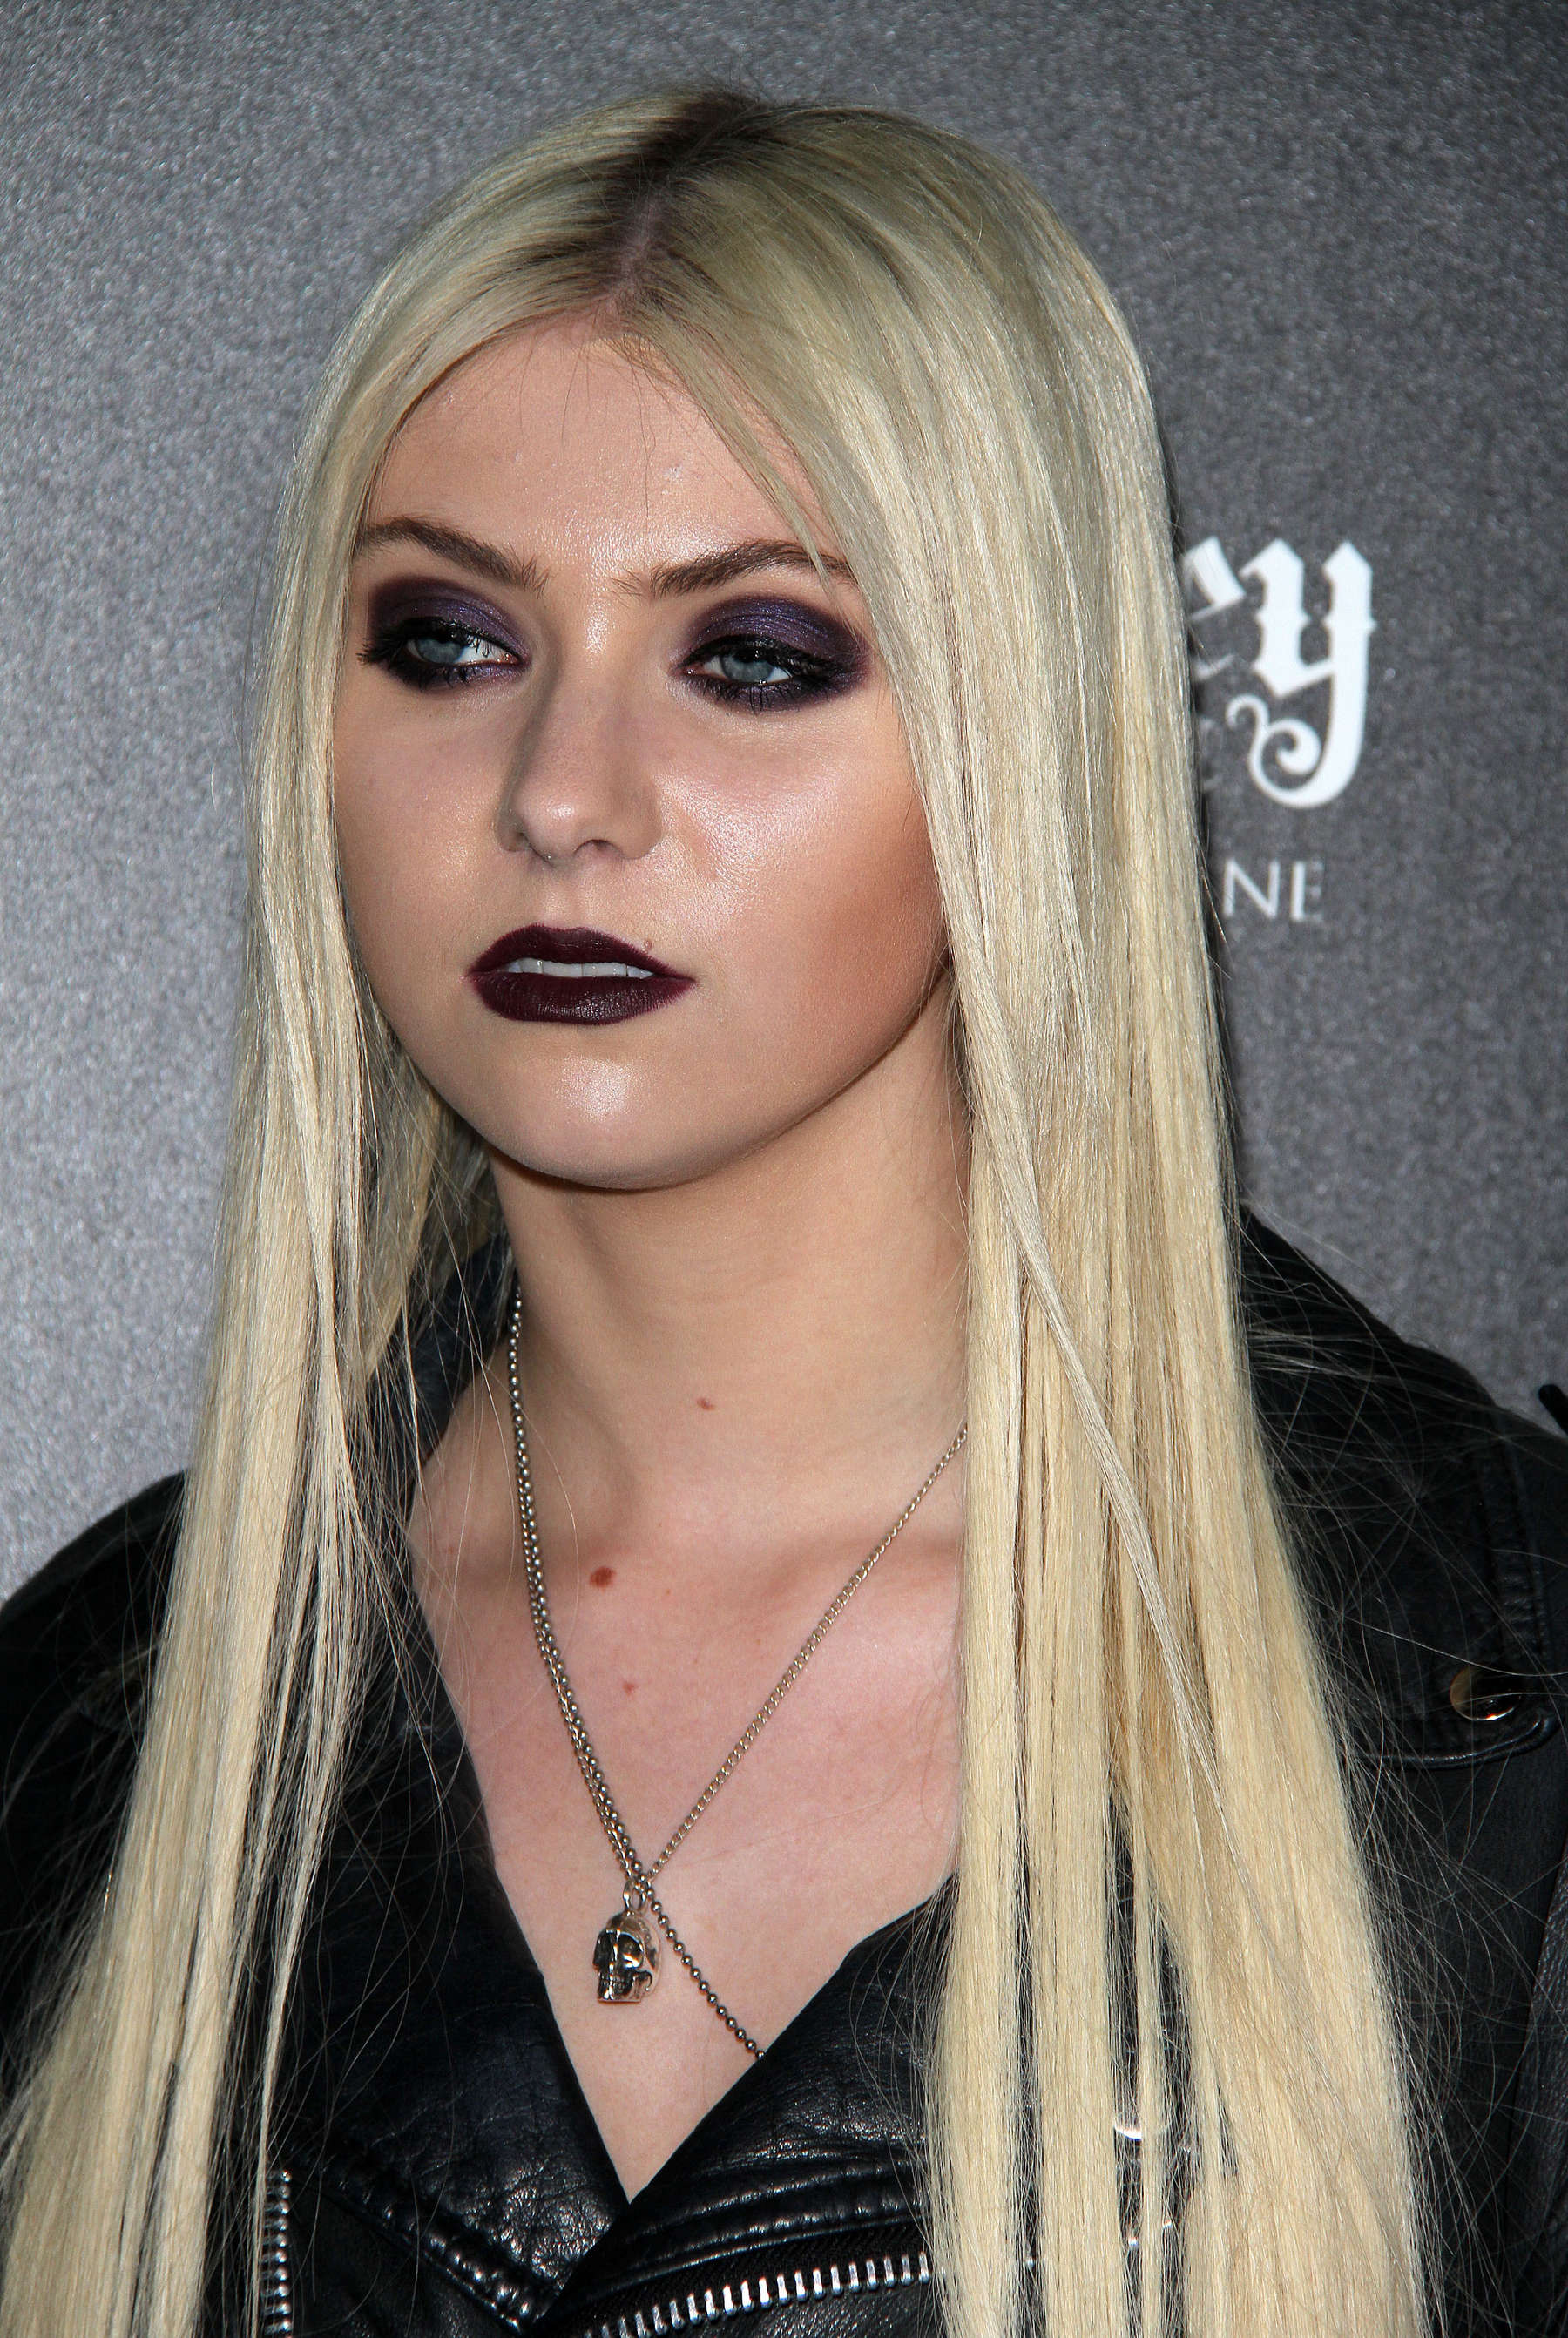 Taylor Momsen at Abbey Dawn Launch party-07 | GotCeleb